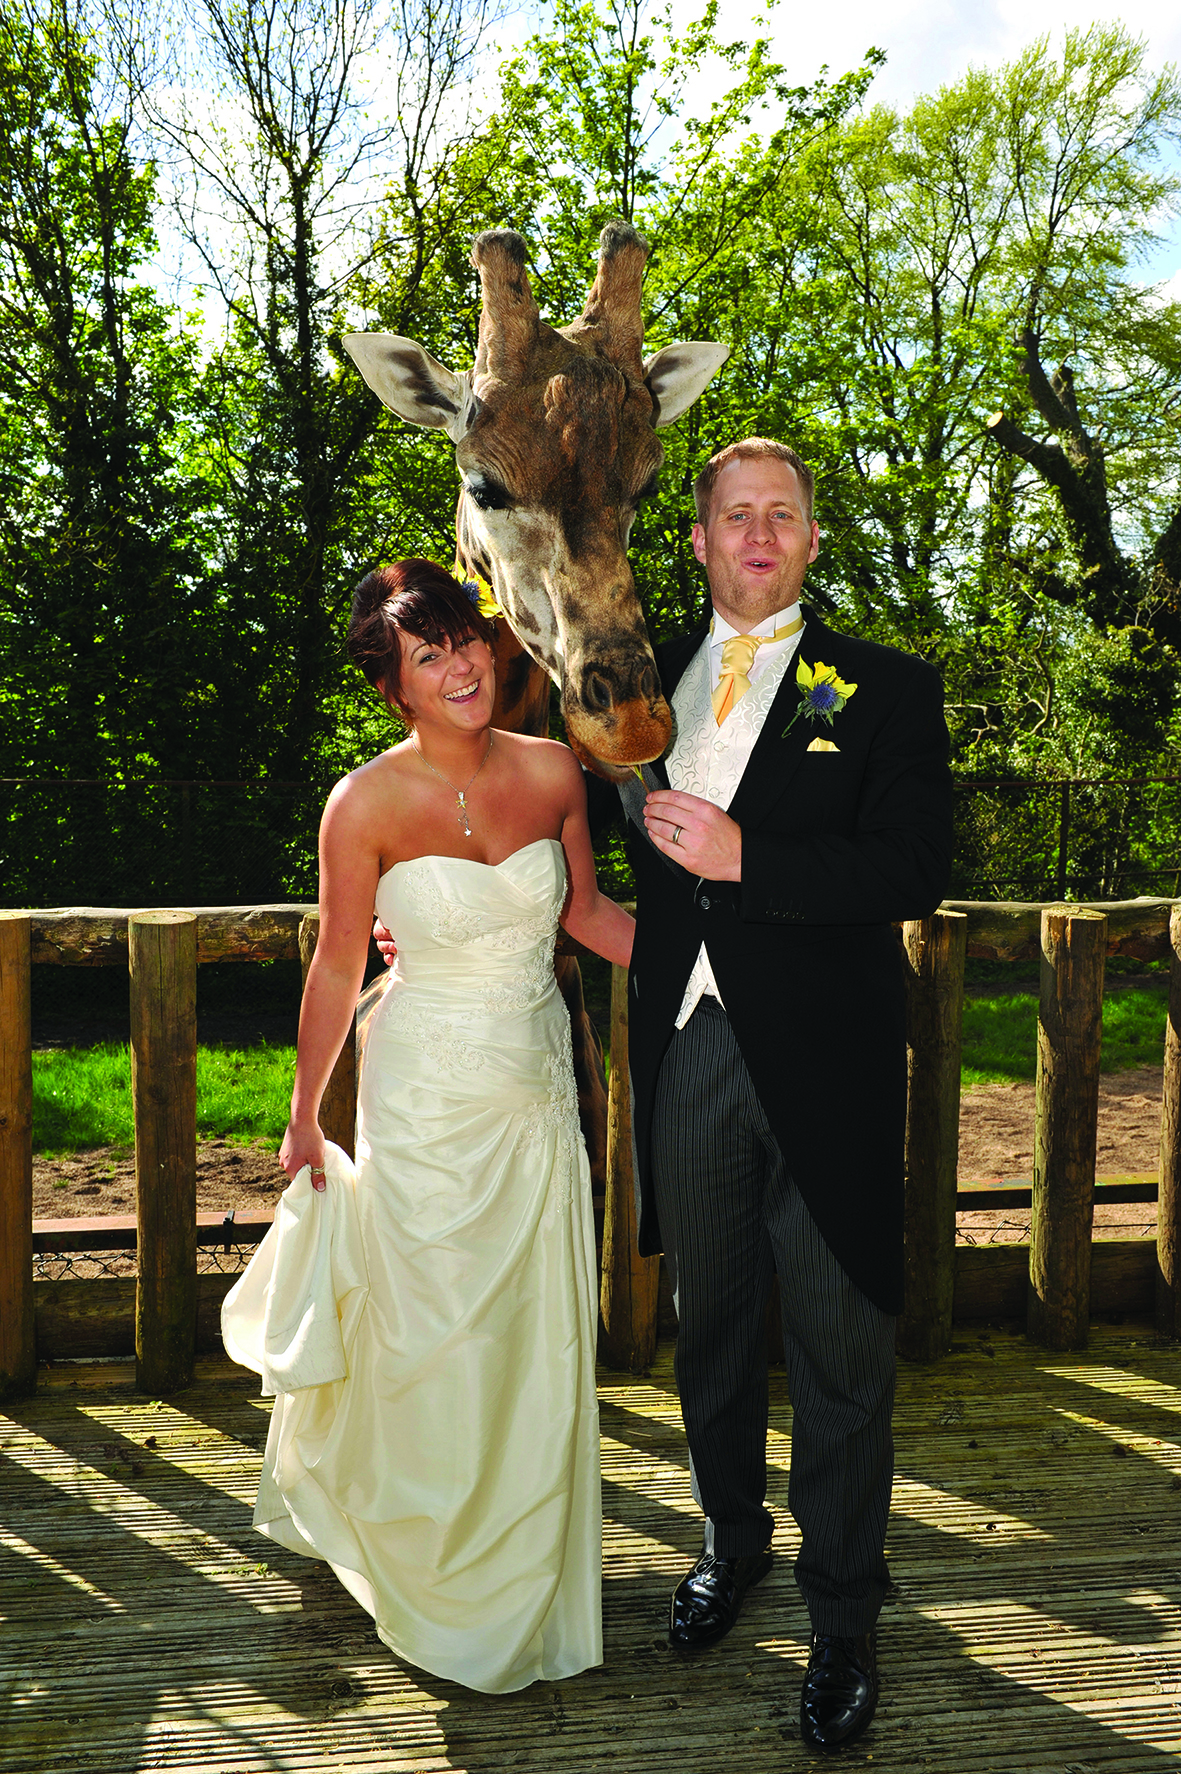 Wedding Dress Hire Dudley West Midlands - Wedding Dress Collections